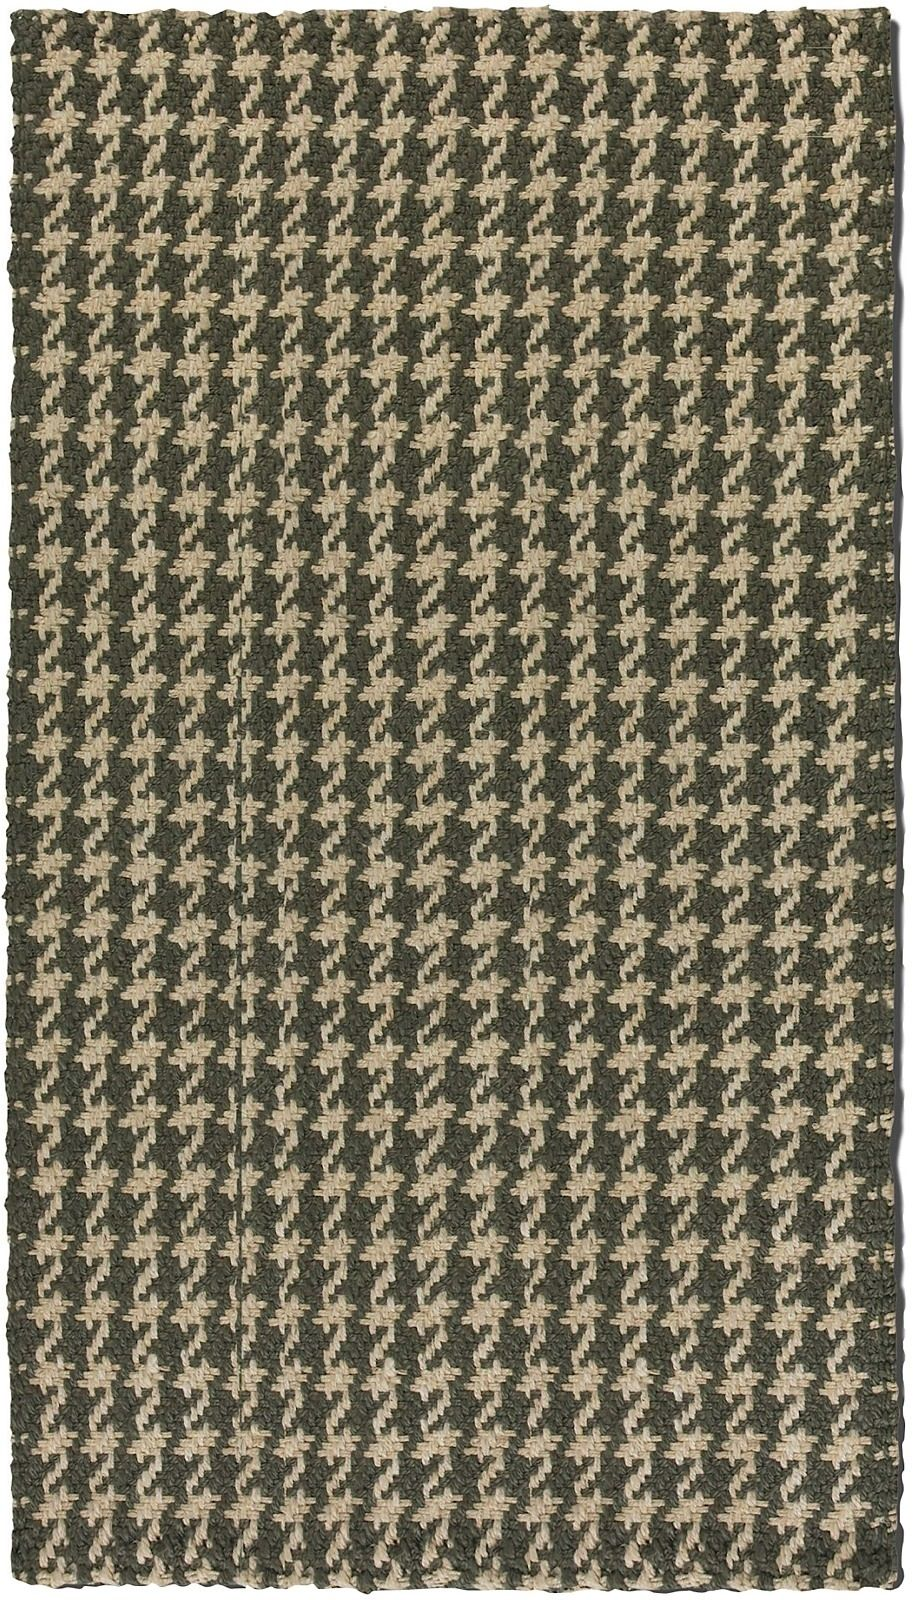 uttermost bengal contemporary area rug collection